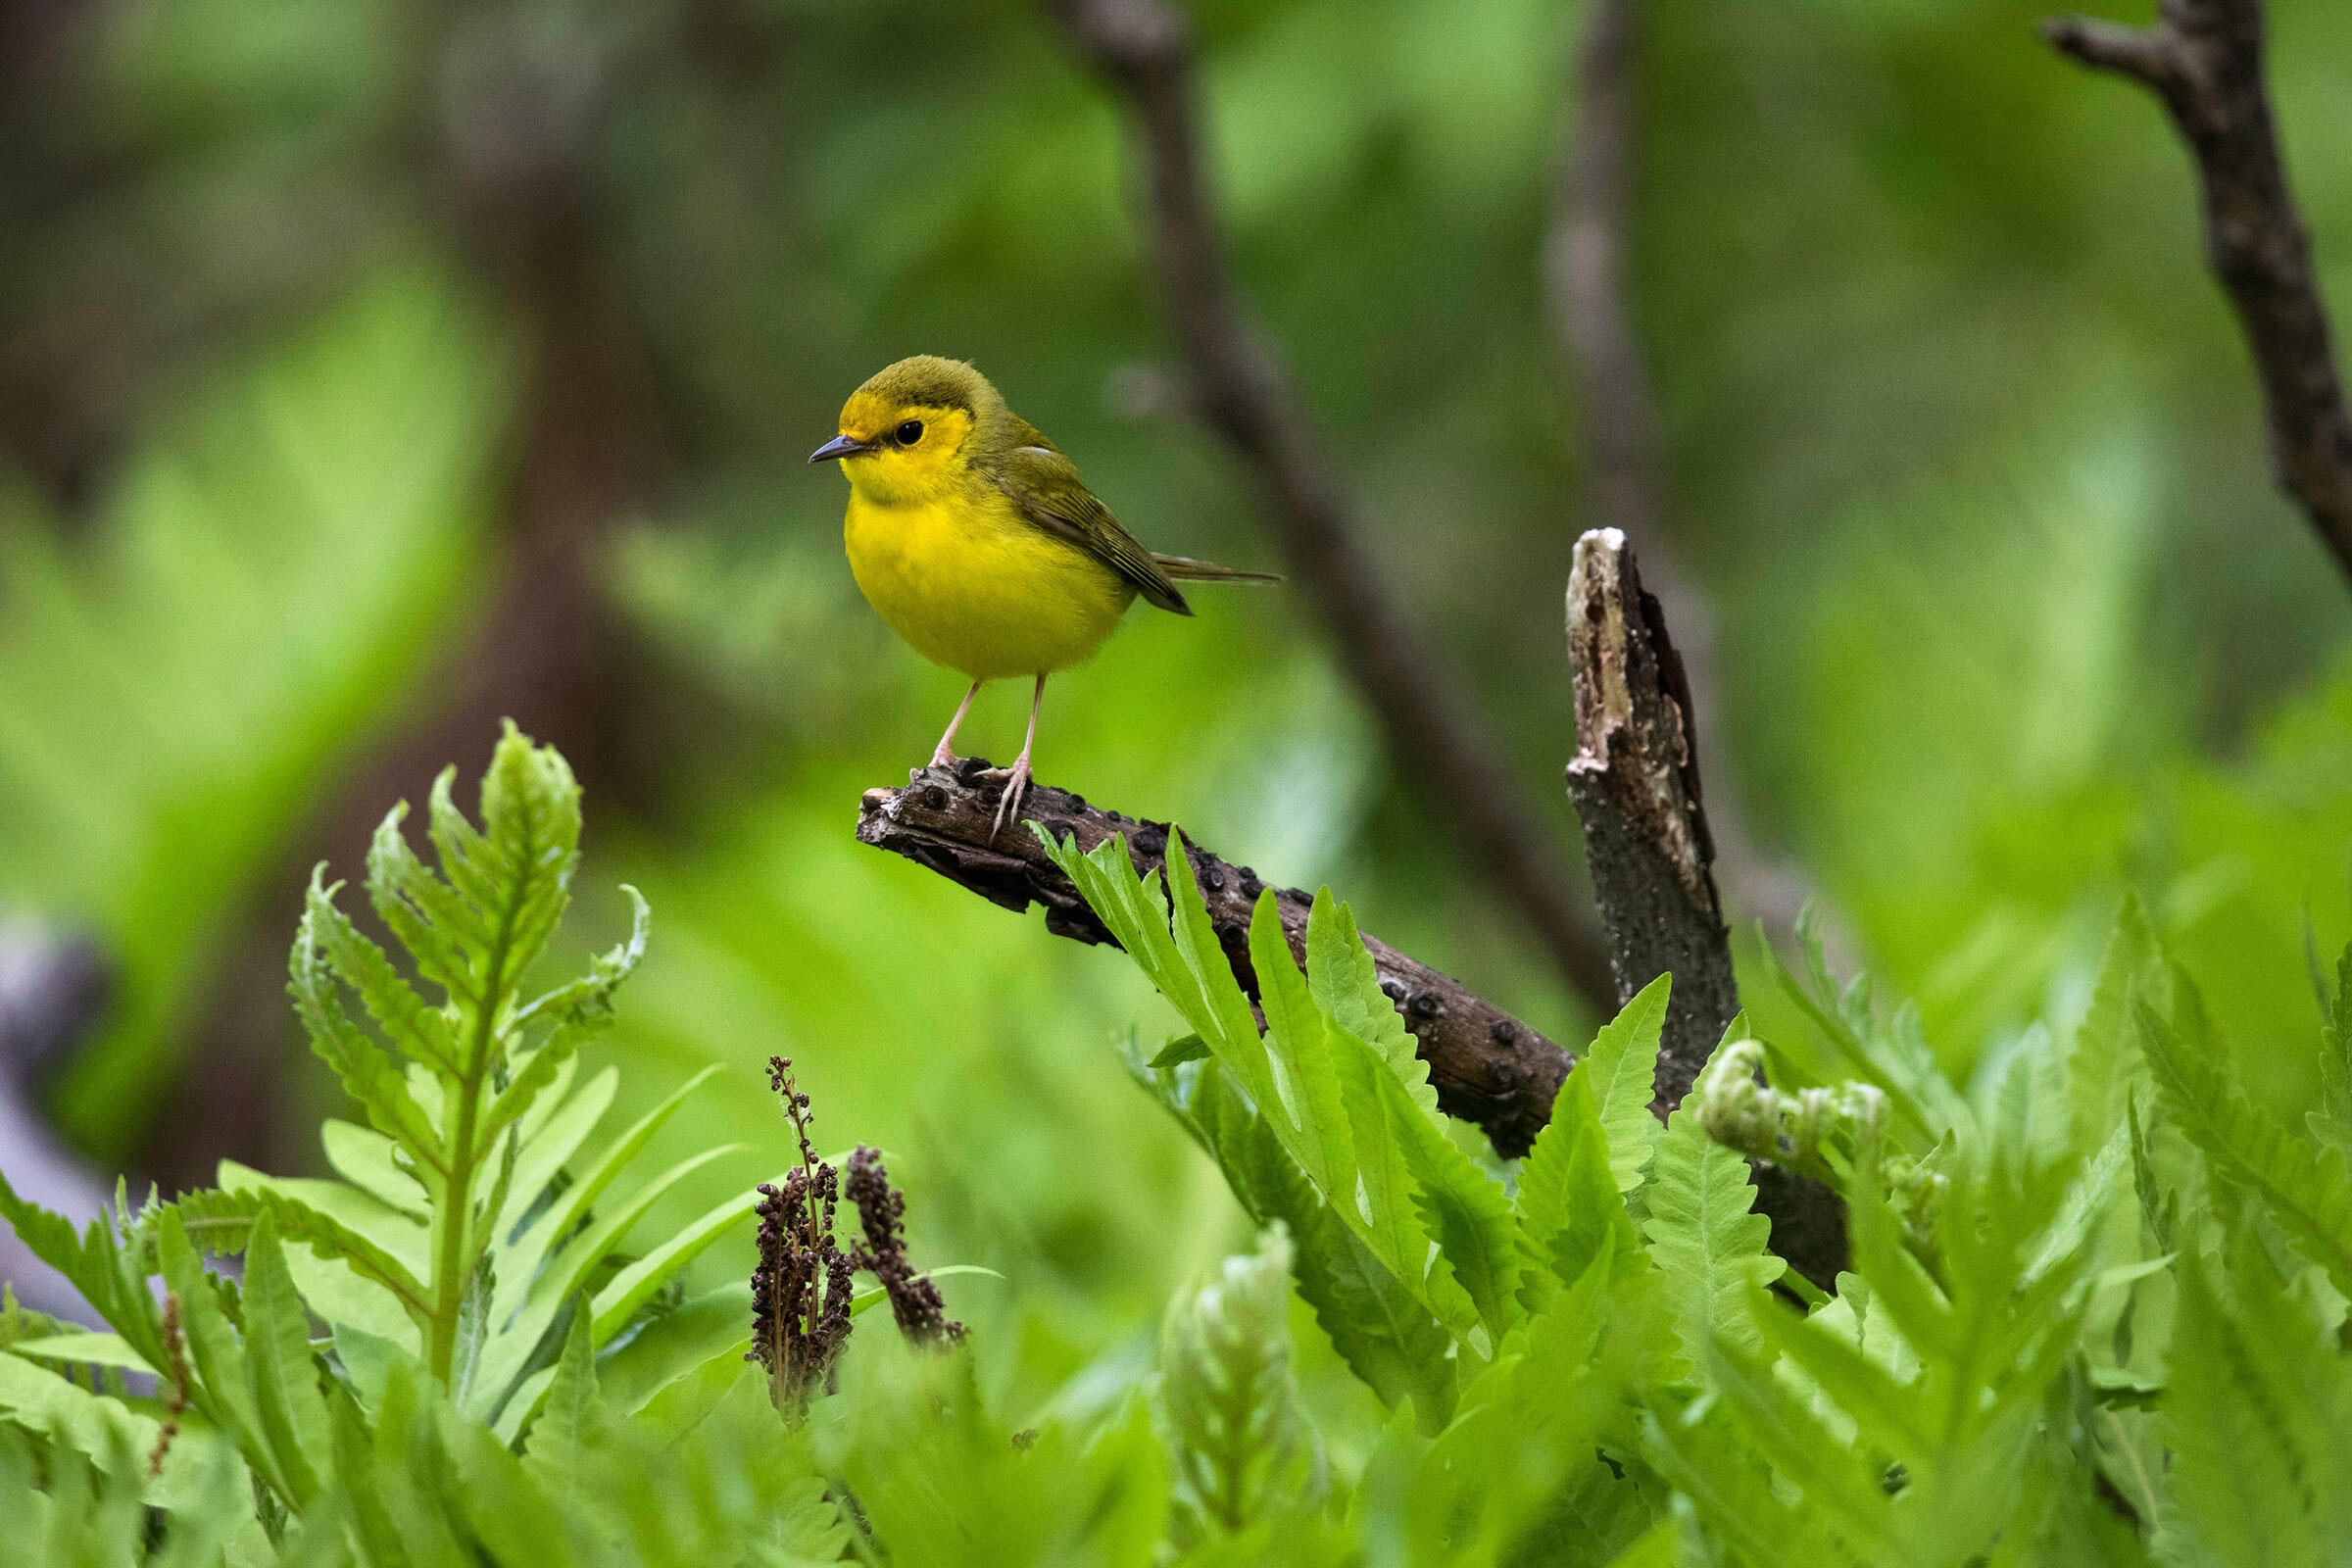 Hooded Warblers are among the many warbler species that take a pit stop in Central Park during spring migration. Francois Portmann